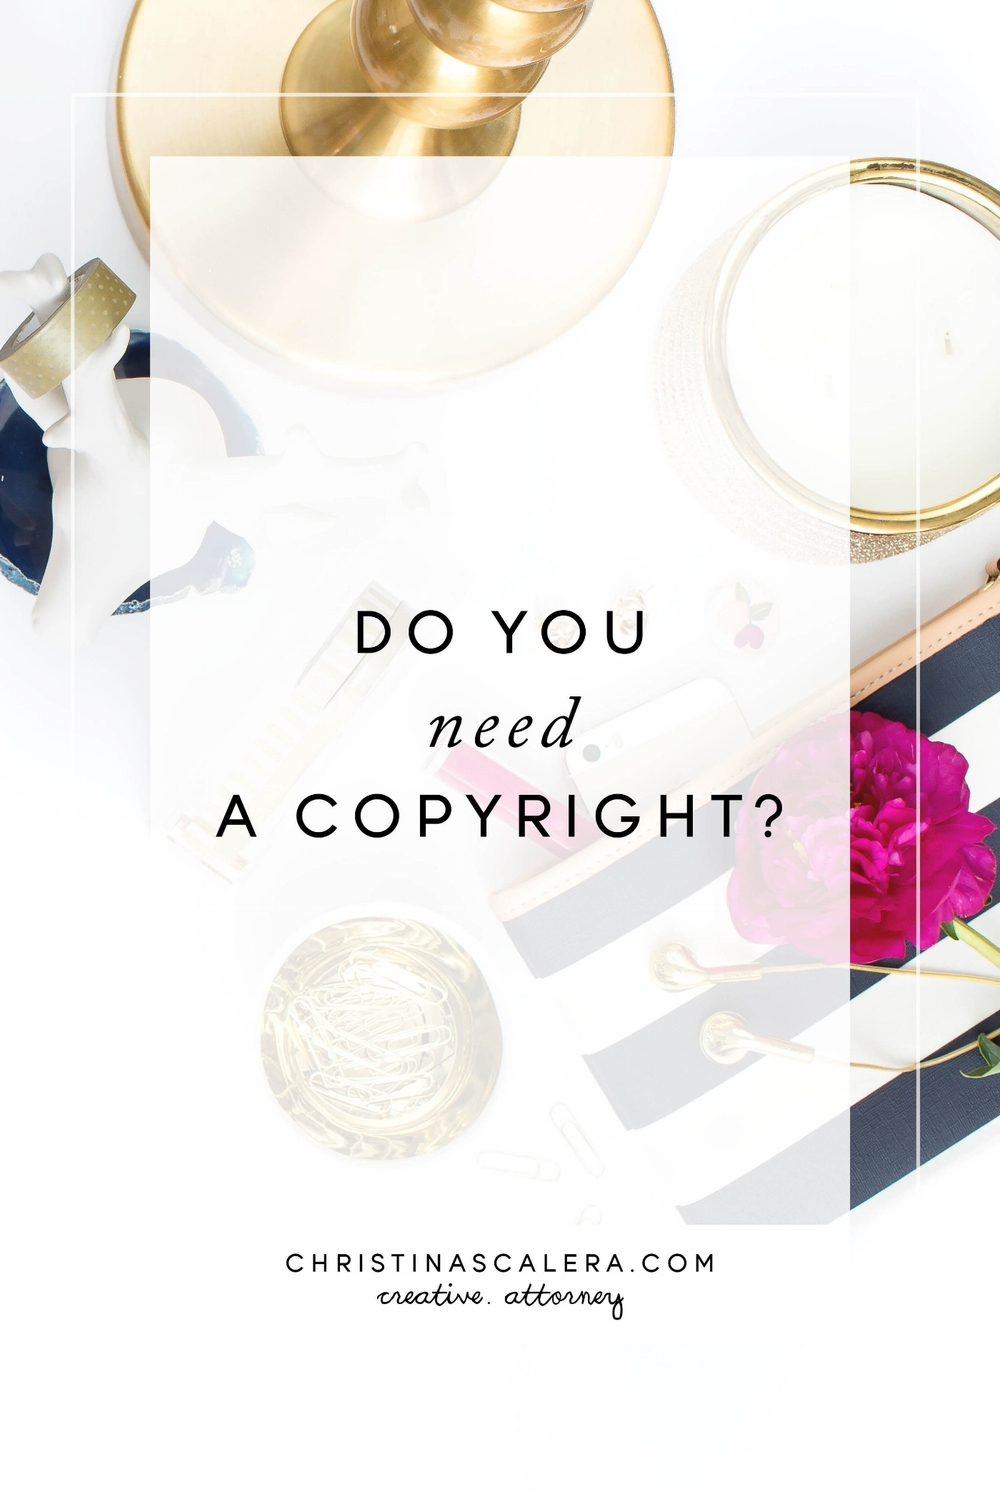 Do you need a copyright + a FREE Workbook!